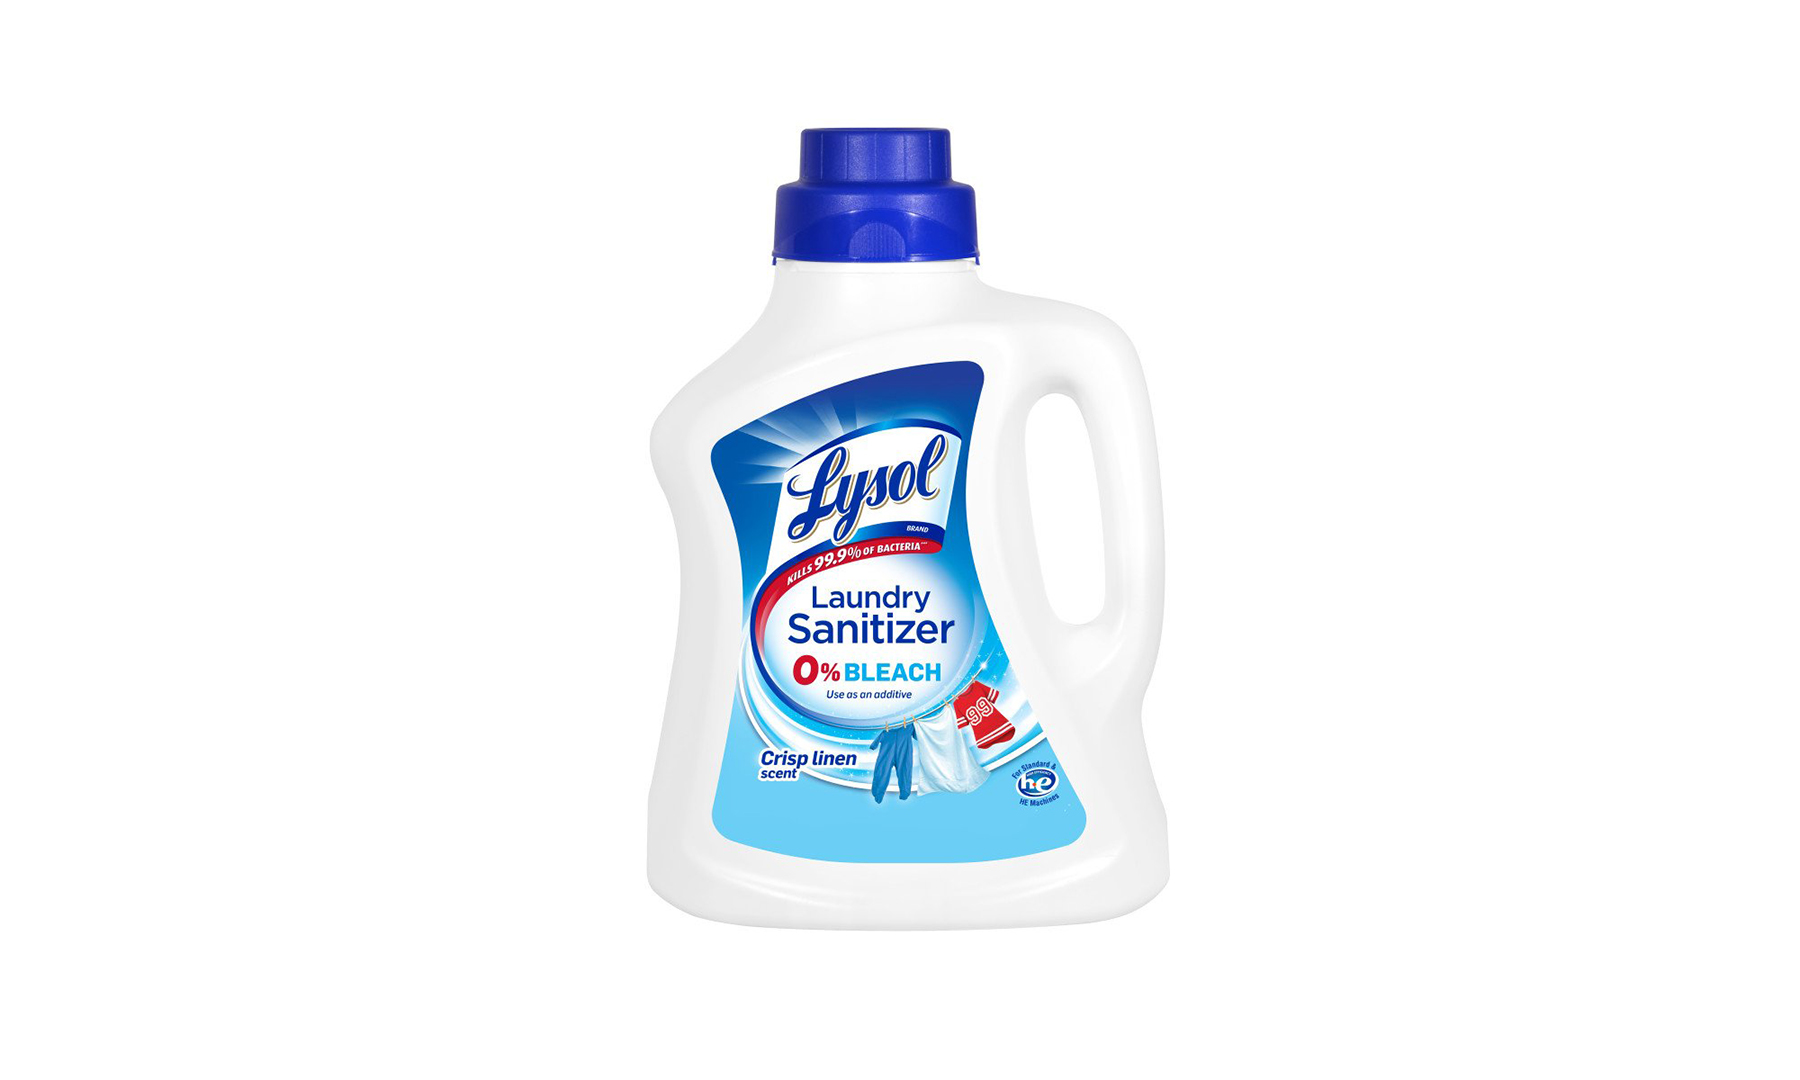 Lysol Laundry Sanitizer